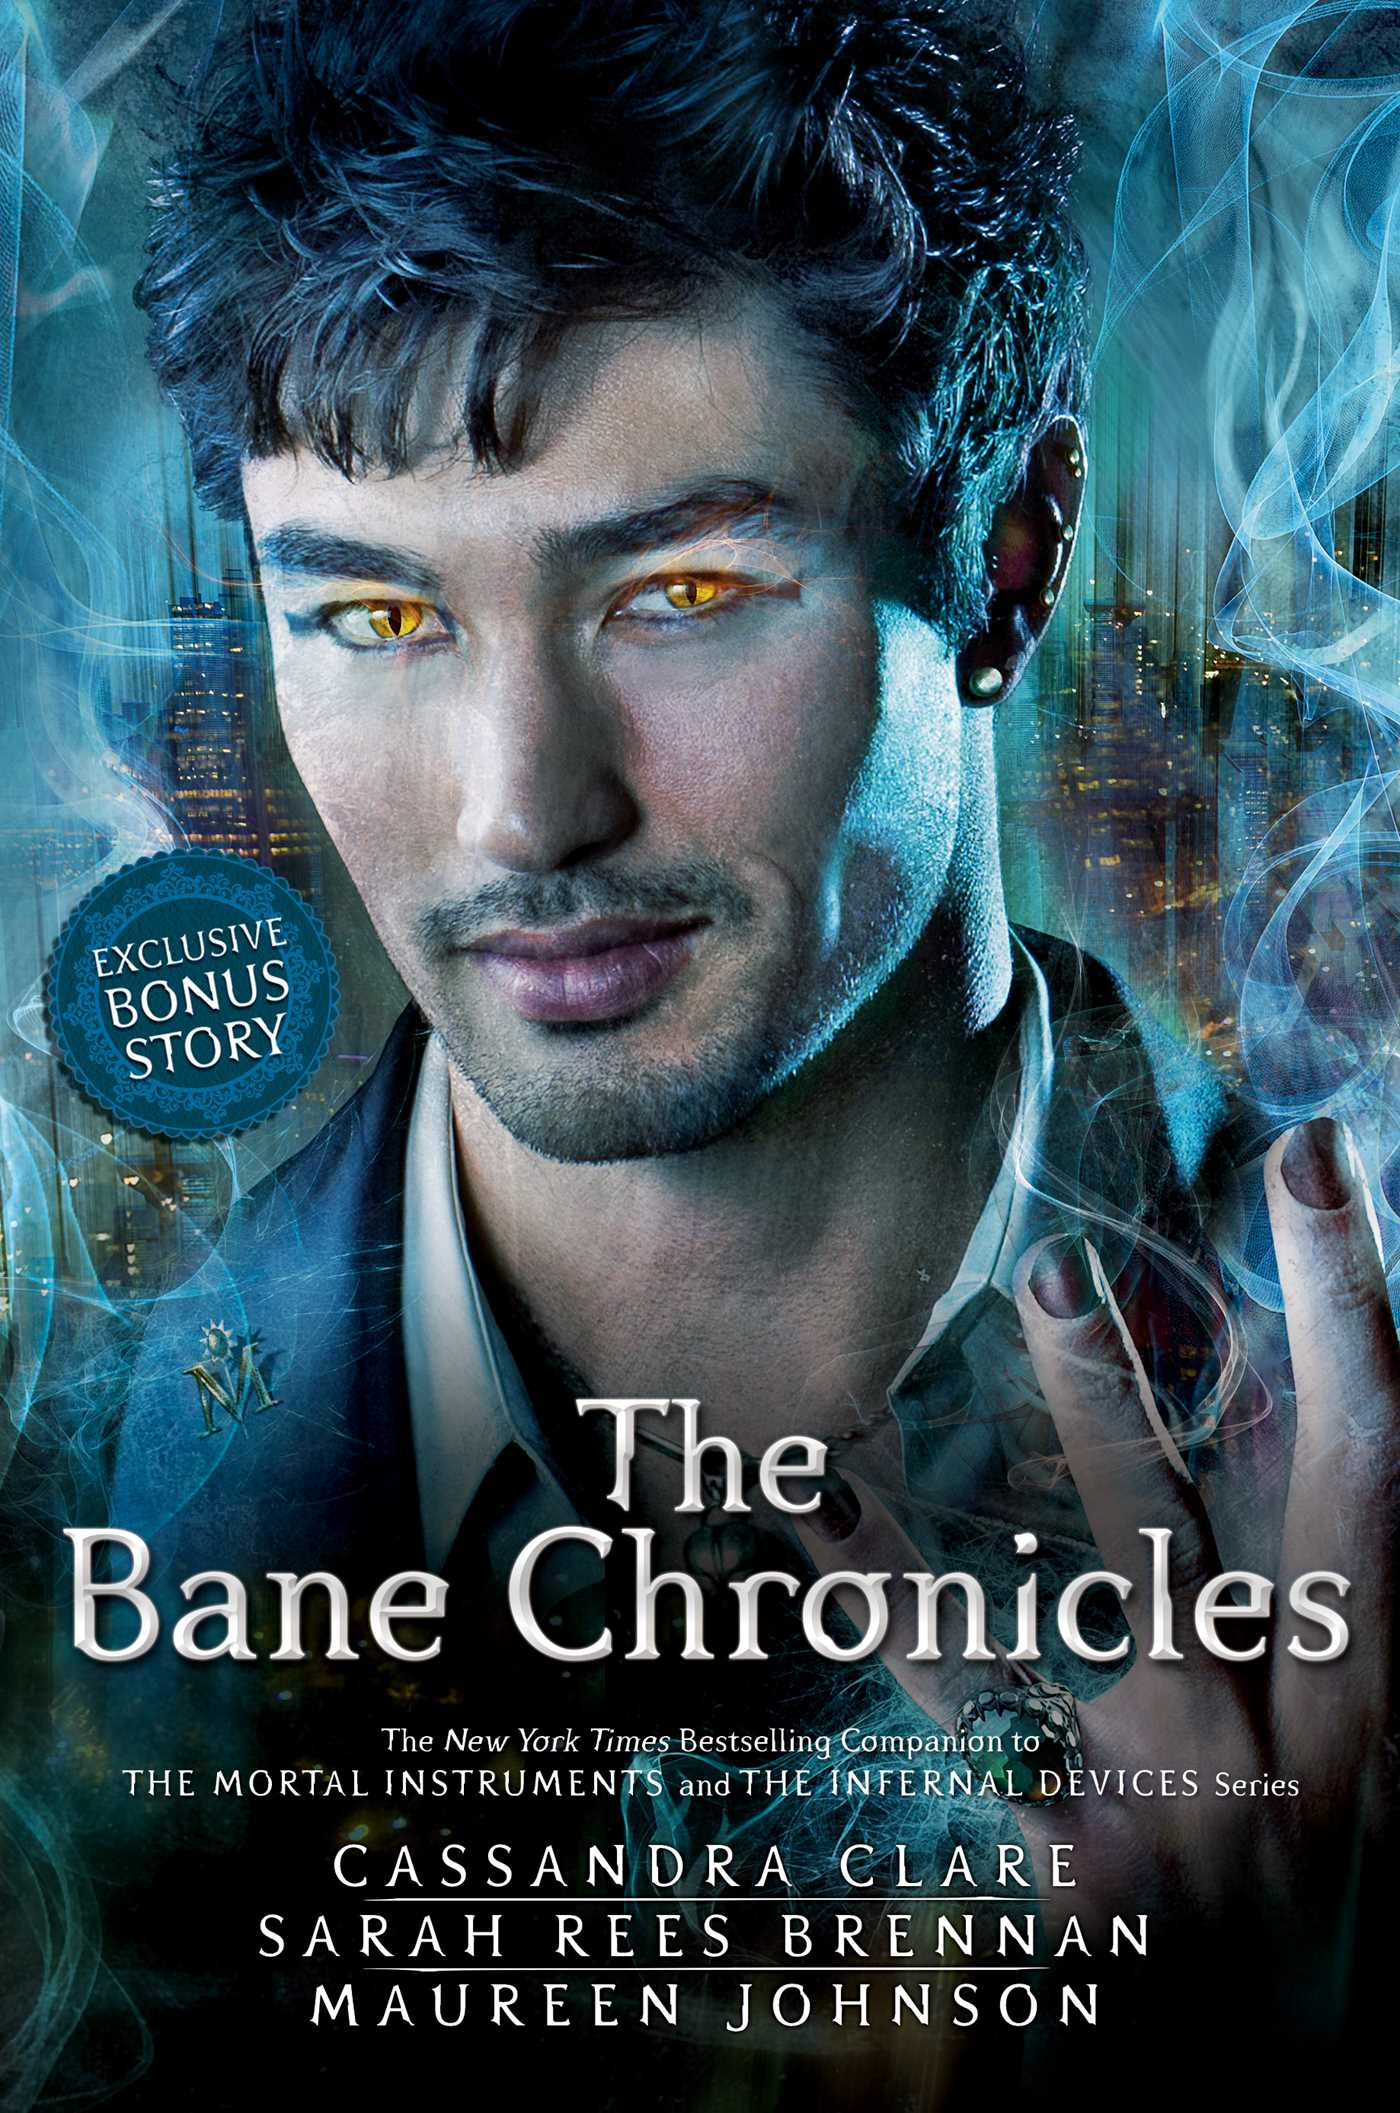 Bane-chronicles-9781442495999_hr